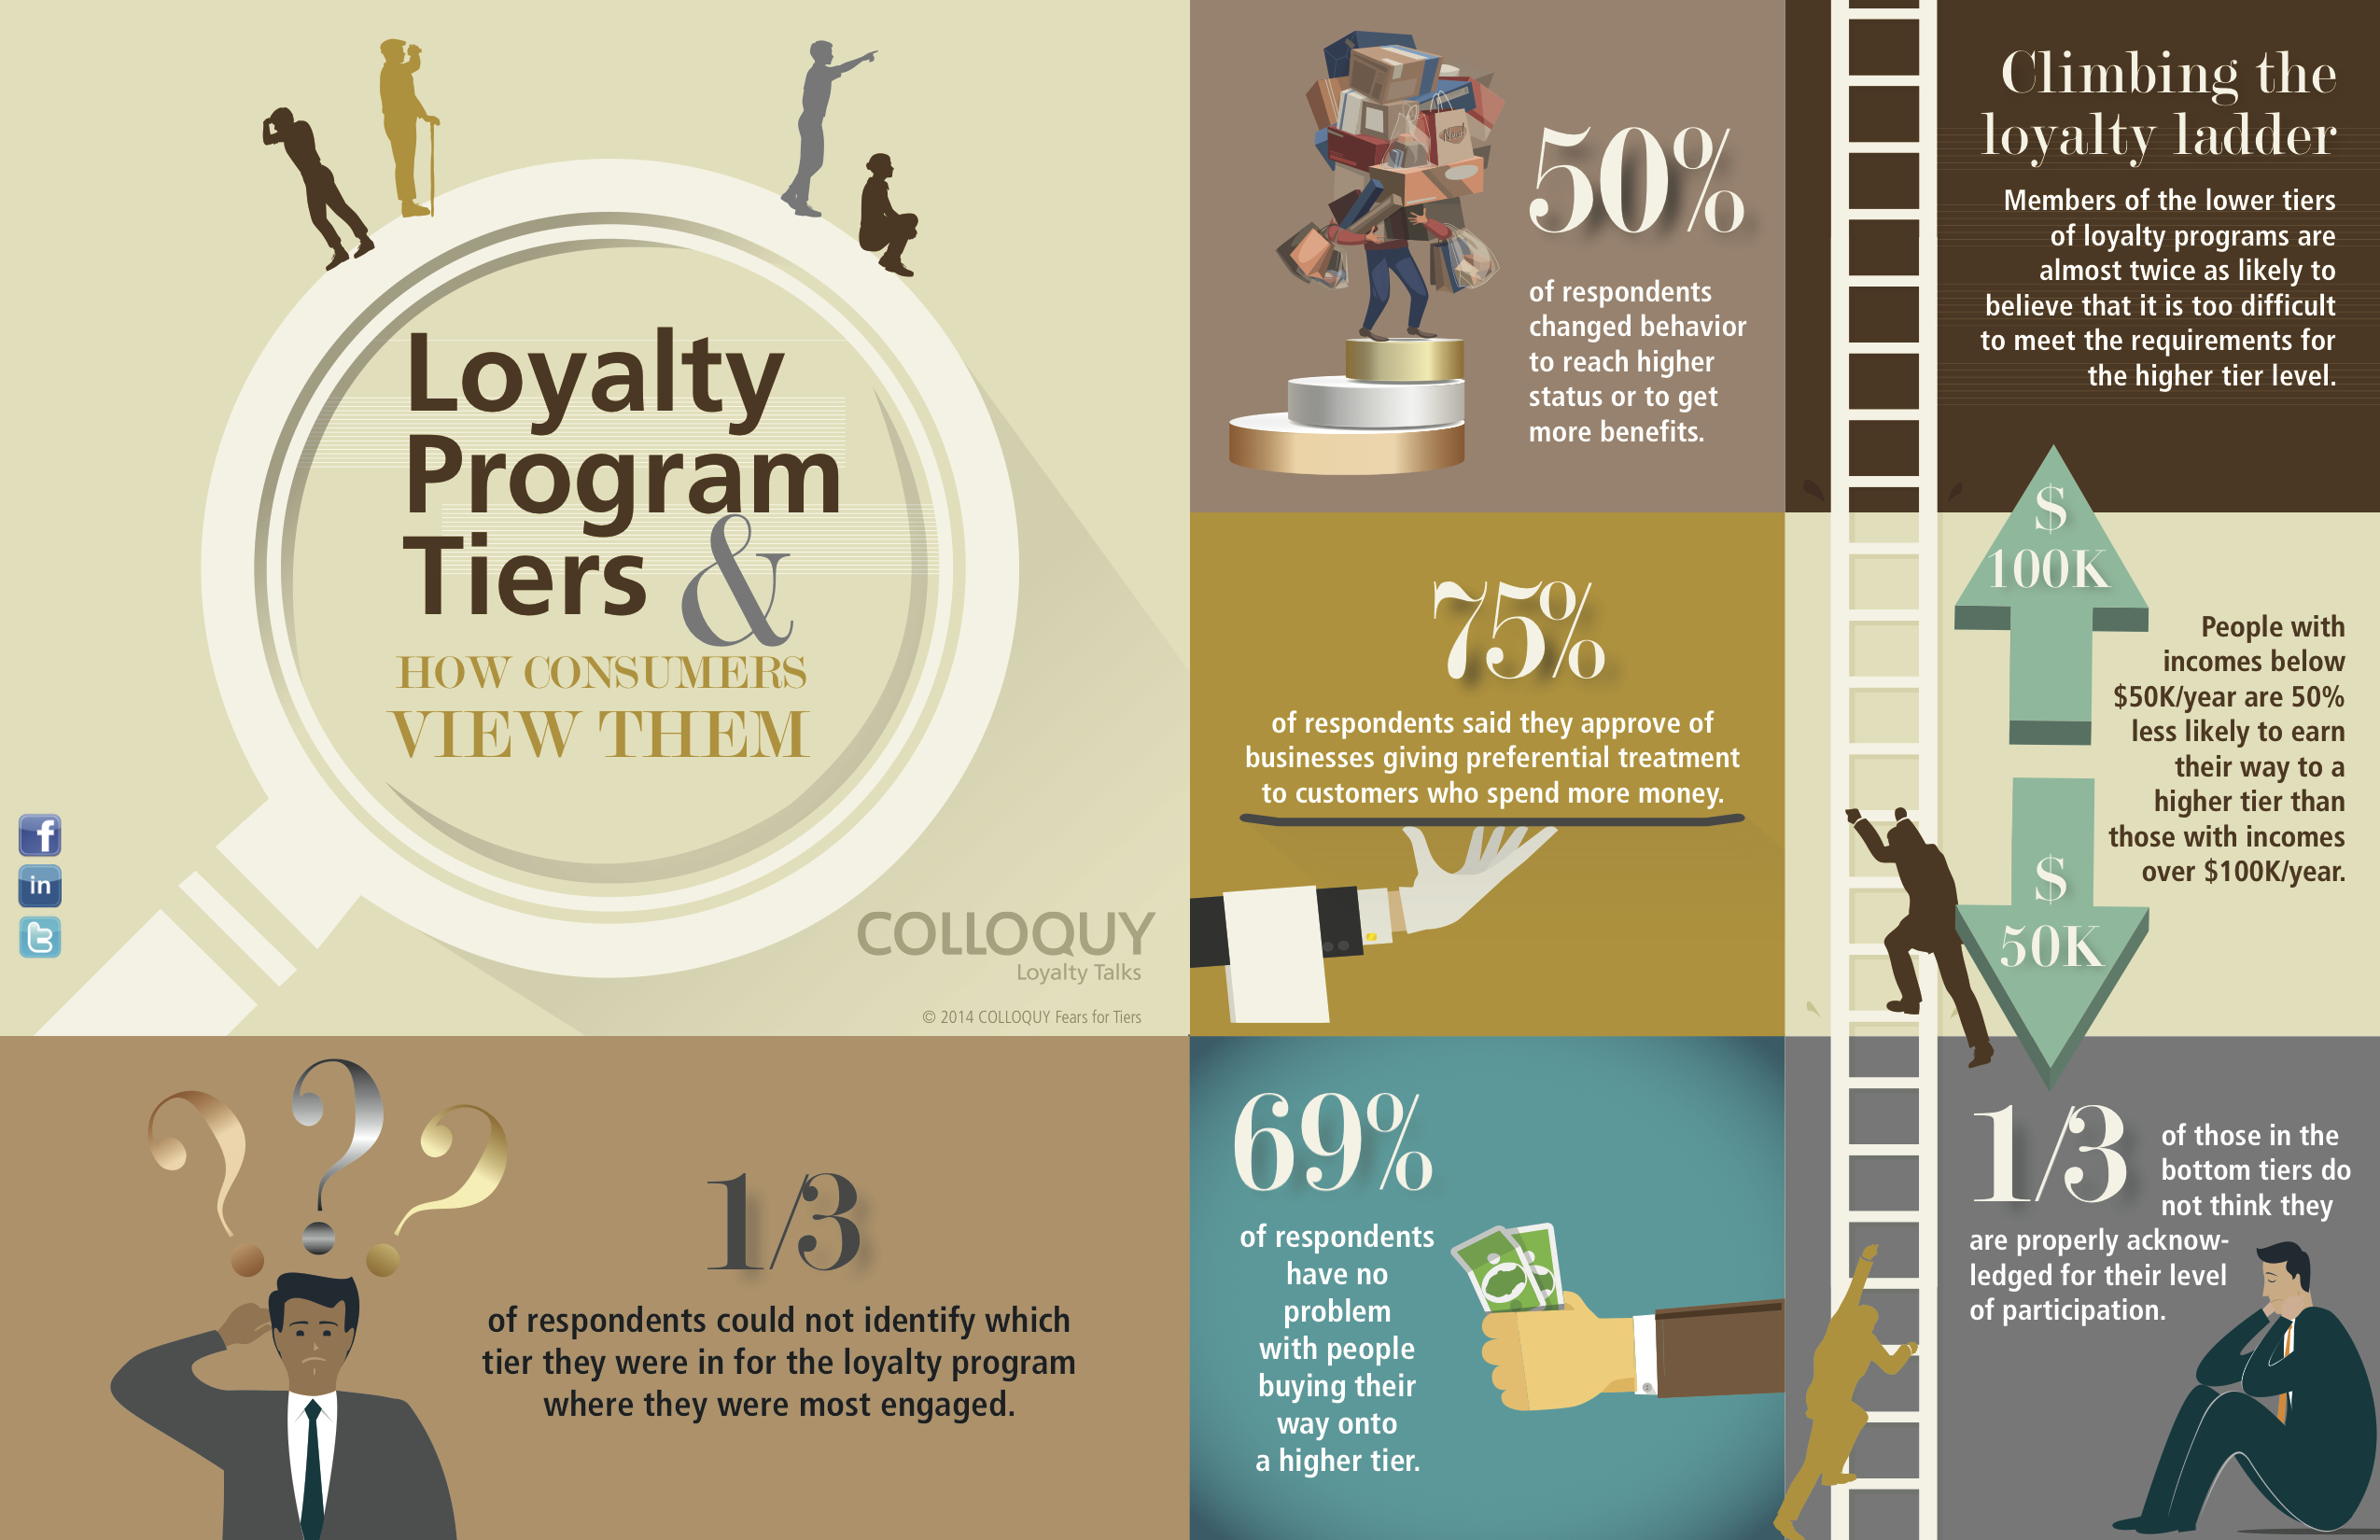 Loyalty Program Tiers